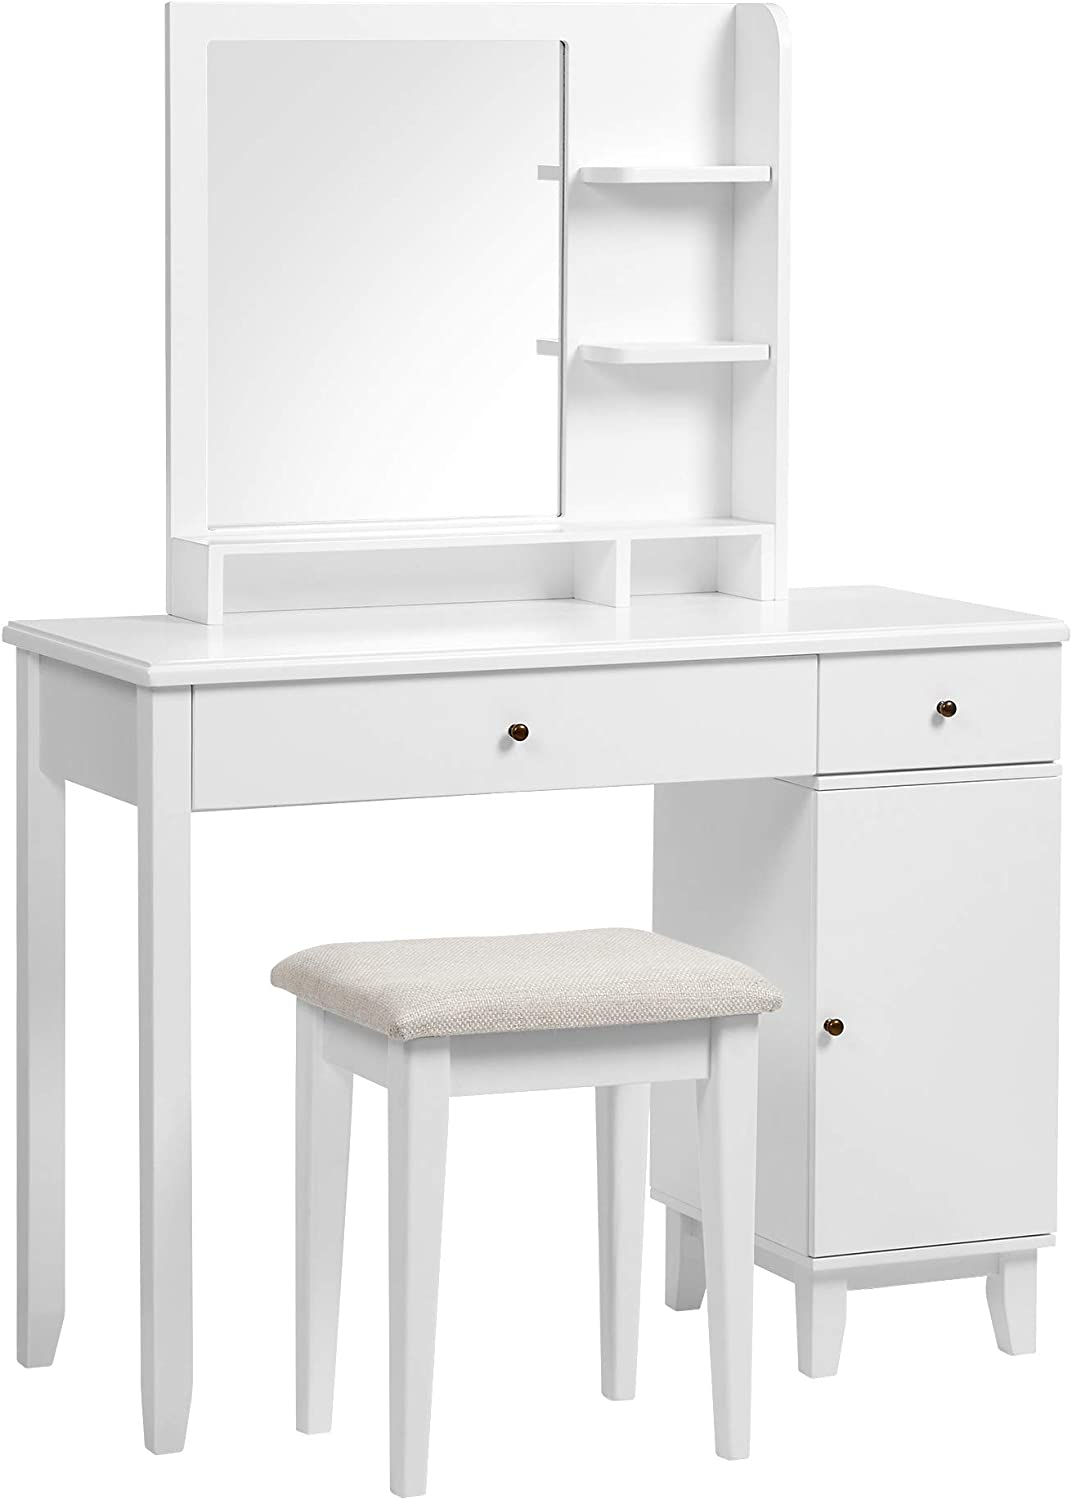 VASAGLE Vanity Set, Dressing Table Set with Mirror, Open Shelves, Large Table Top, 2 Drawers, a Cabinet, Cushioned Stool, Solid Wood Legs, Gift Idea, for Bedroom, White URDT174W01